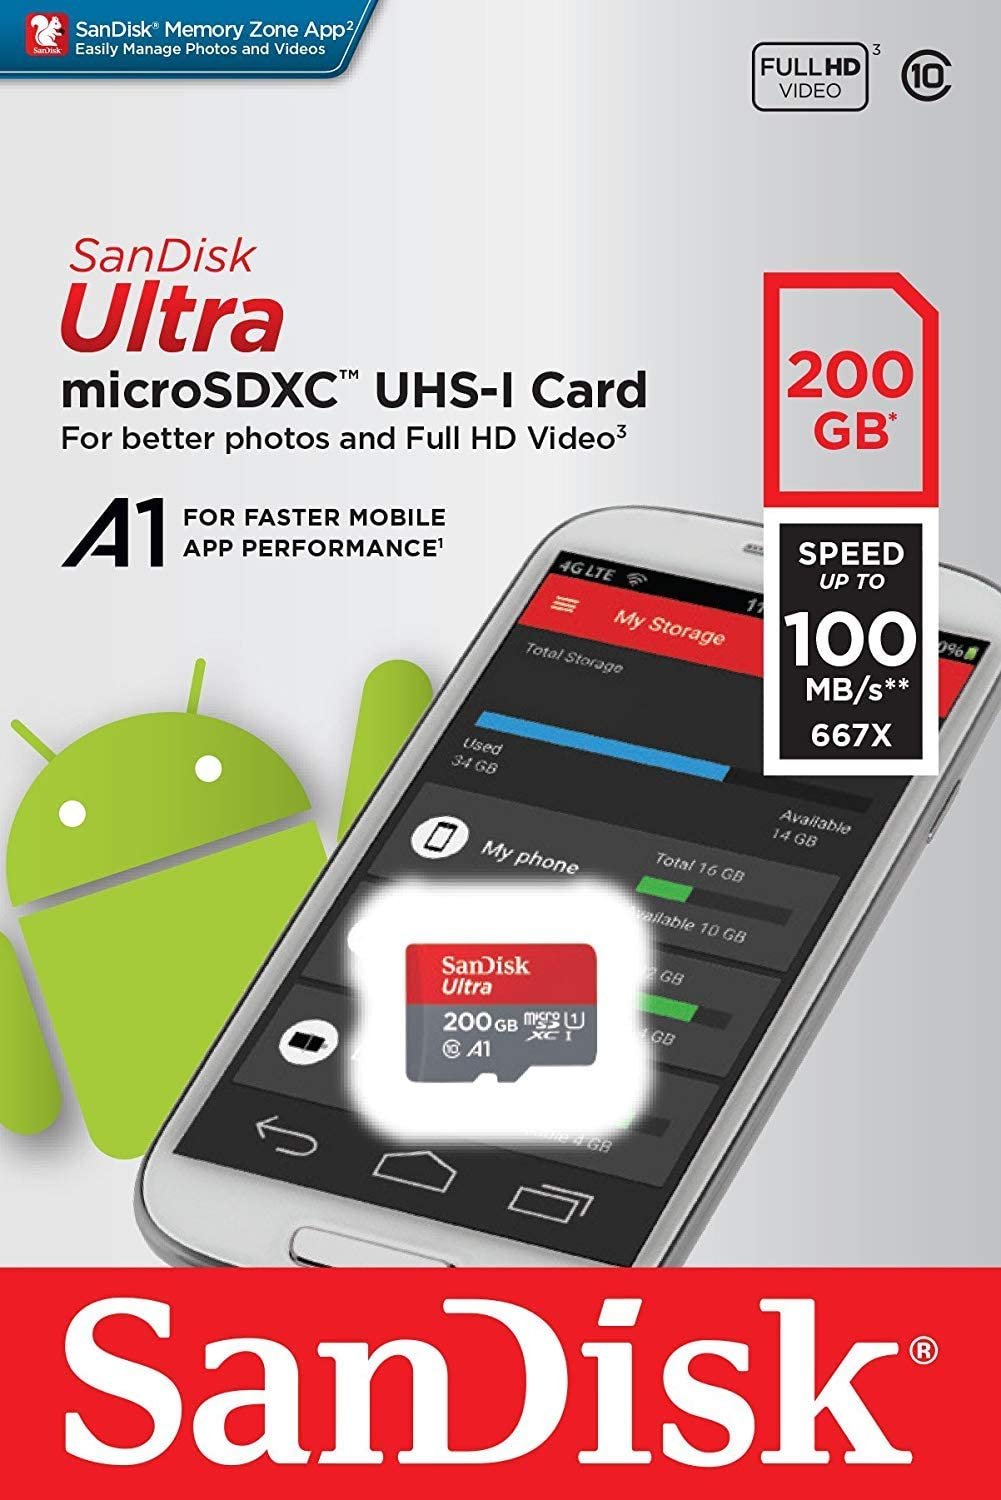 100MBs A1 U1 C10 Works with SanDisk SanDisk Ultra 200GB MicroSDXC Verified for Spice Mobile Mi-497 by SanFlash